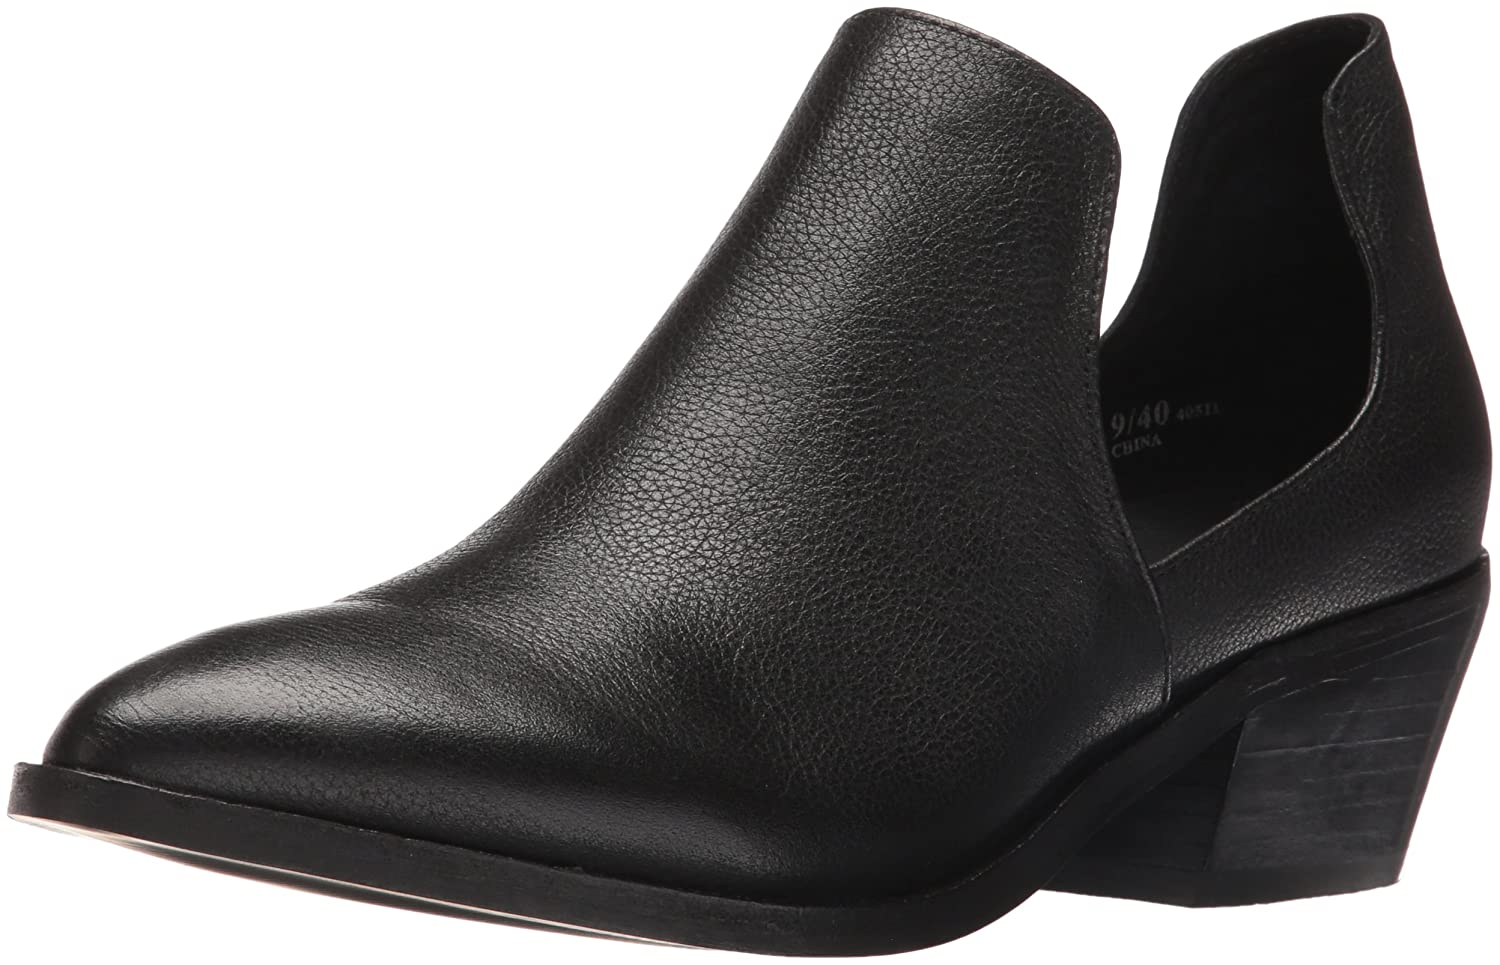 Chinese Laundry Women's Focus Ankle Bootie B01JK45QFU 9 B(M) US|Black Leather